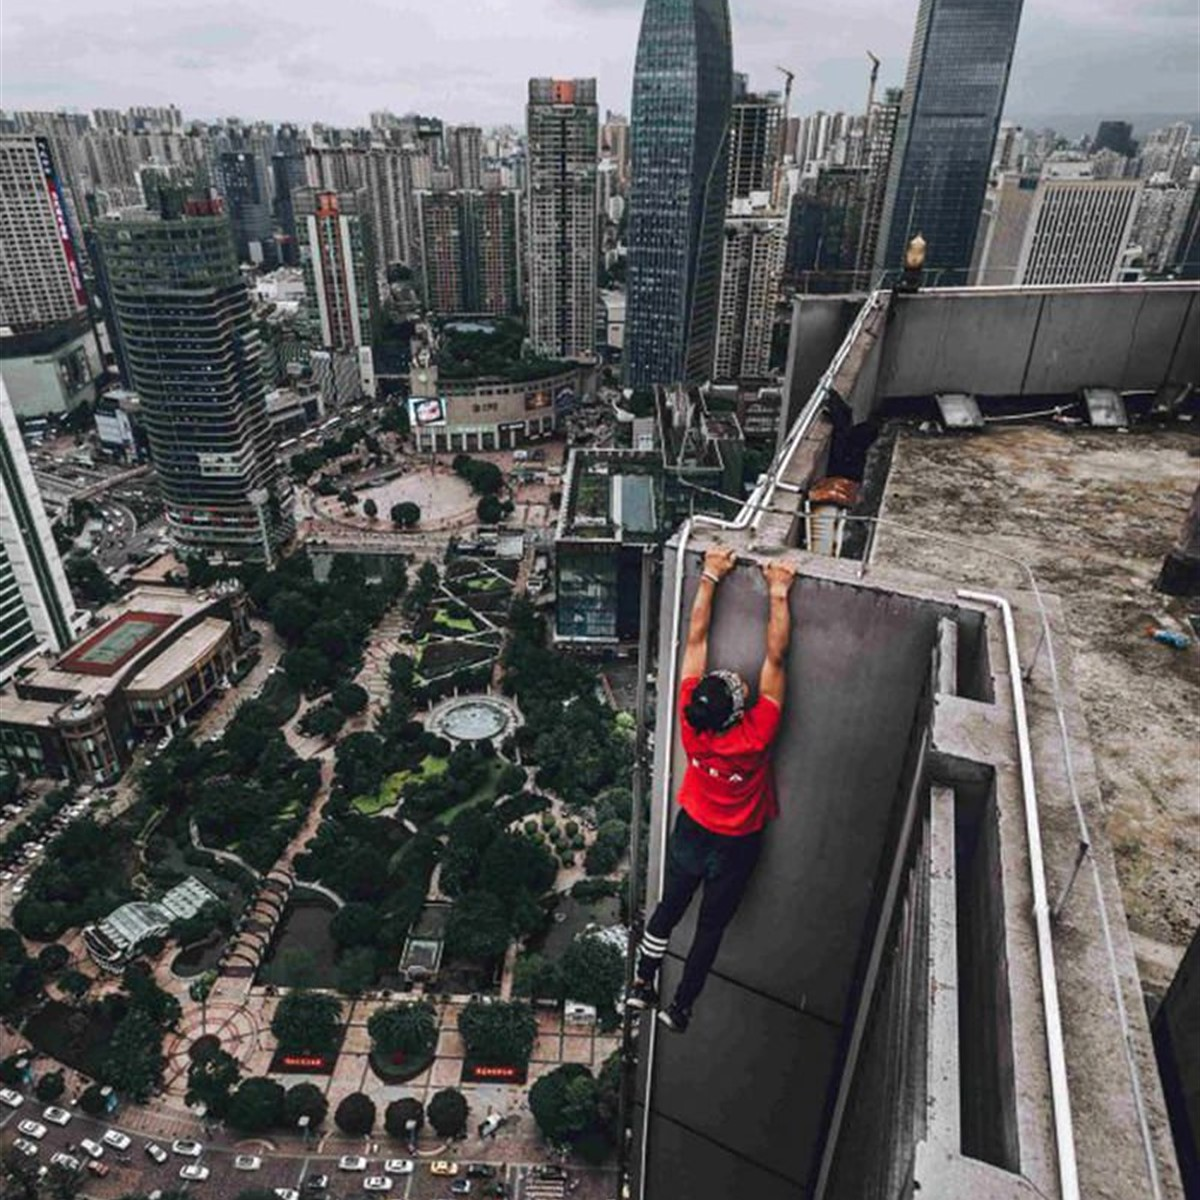 Chinese rooftopper Wu Yongning dies during stunt Chinese rooftopper Wu Yongning dies during stunt new pics